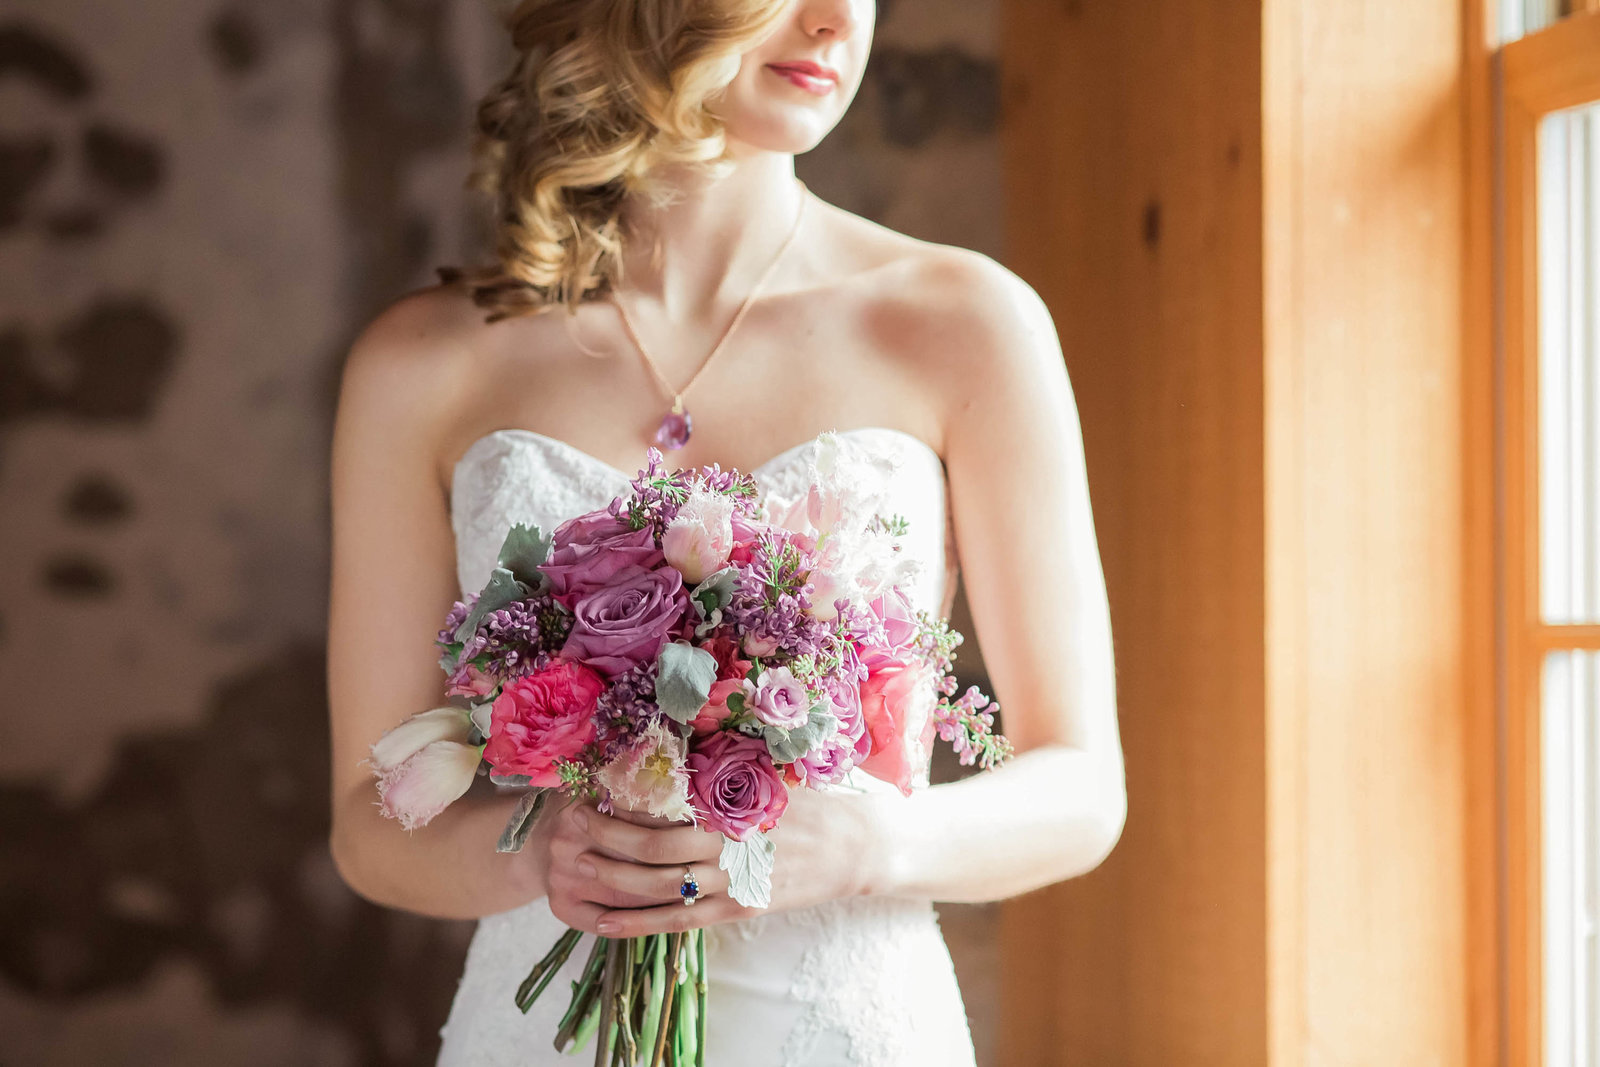 bouquet-nicolosa-gown-sweetwater-farm-winery-philadelphia-fashion-delaware-main-line-today-magazine-bridal-editorial-photography-kate-timbers219